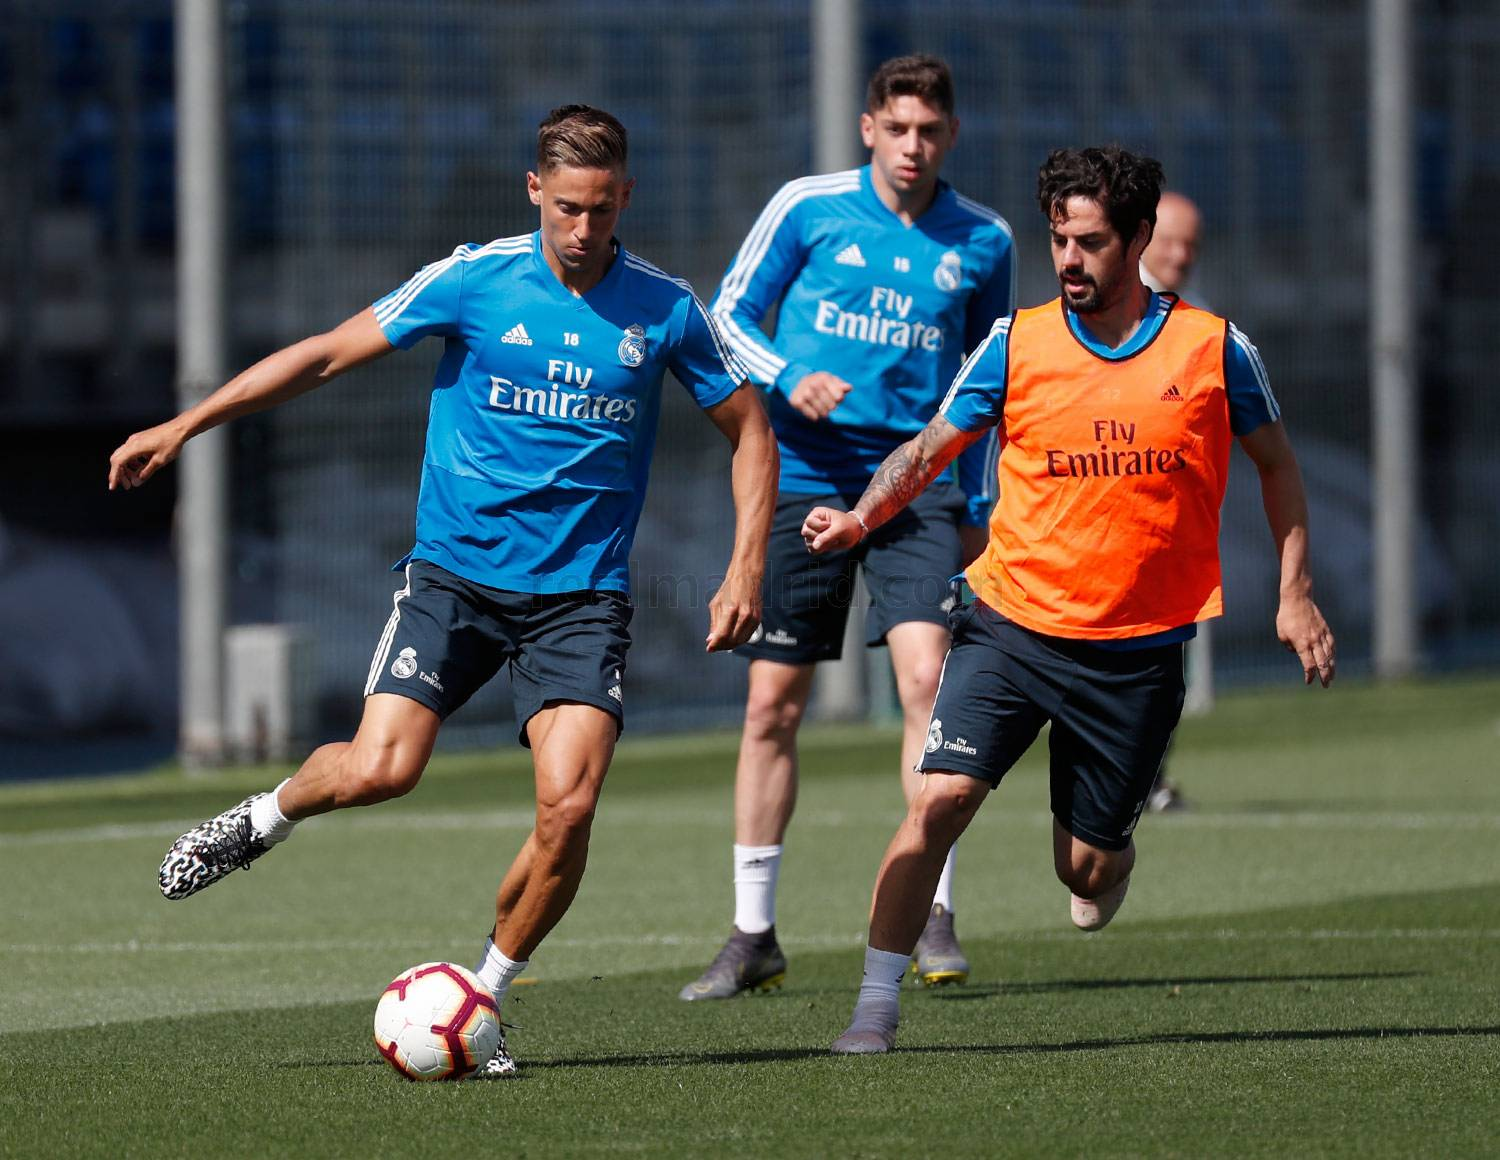 Real Madrid - Entrenamiento del Real Madrid - 10-05-2019